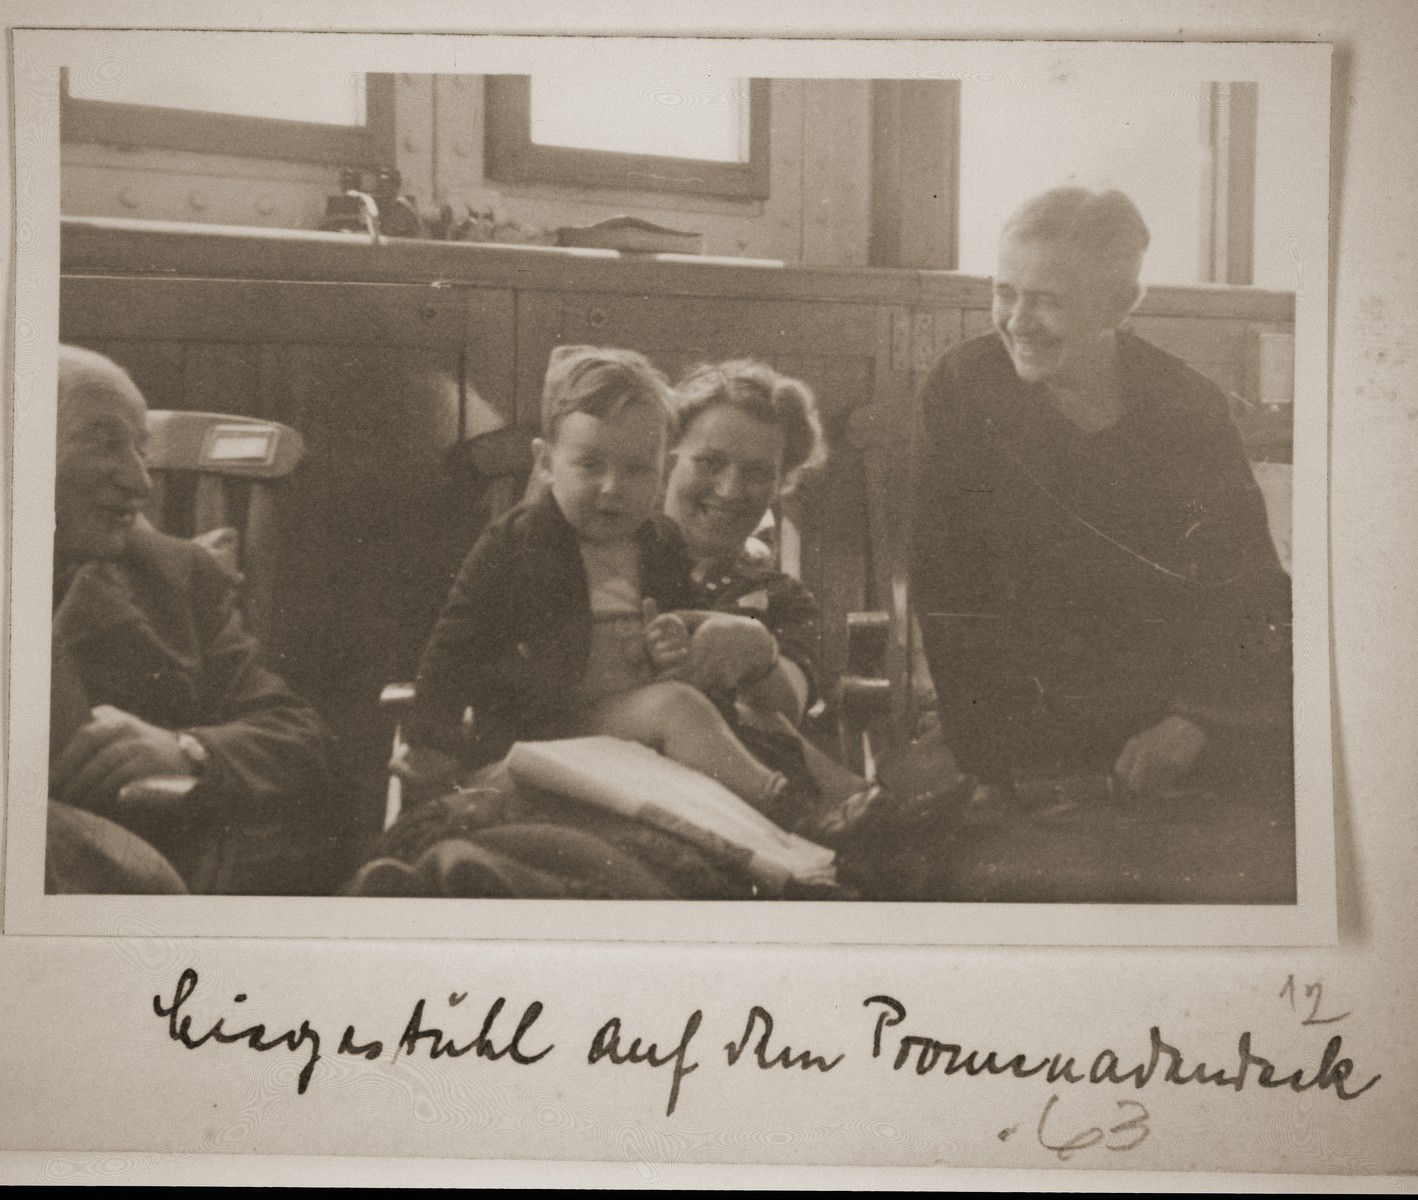 The Vendig family sits on the promenade deck of the St. Louis.